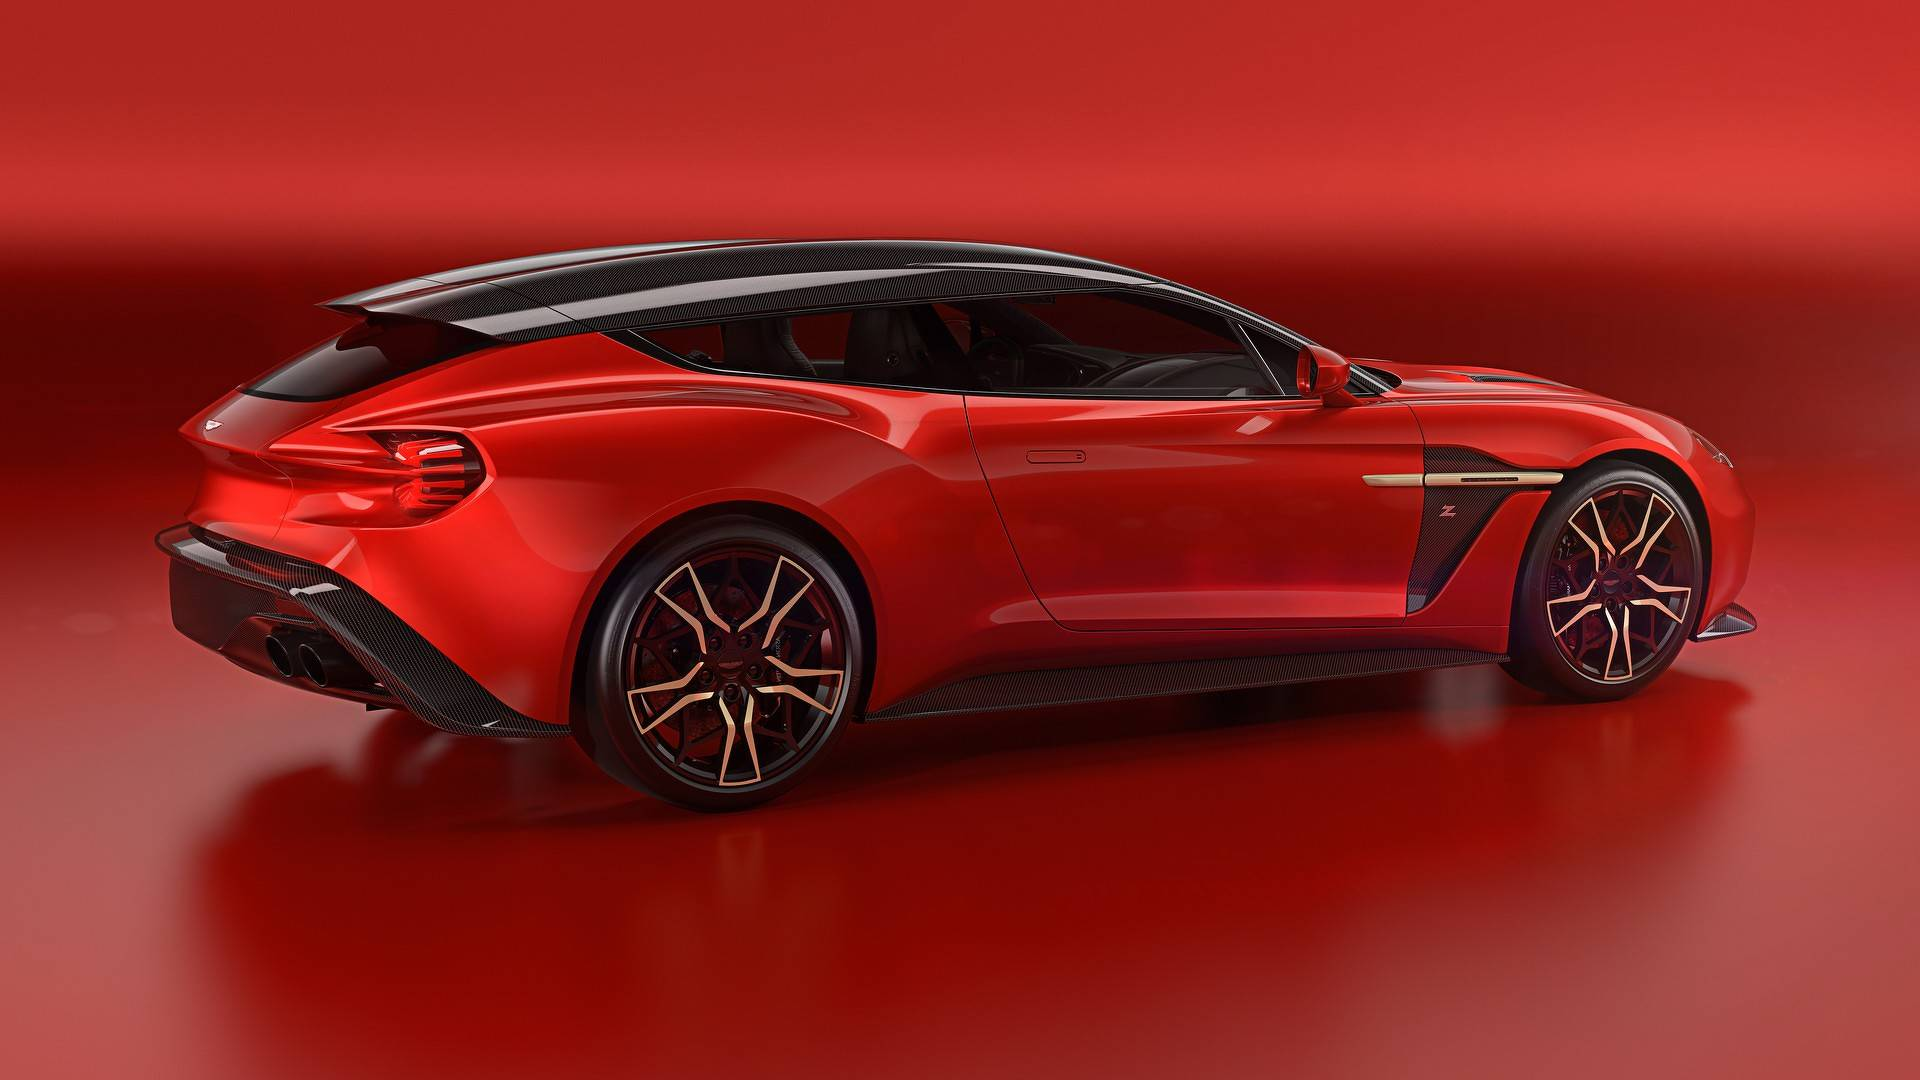 New Aston Martin Vanquish Zagato Shooting Brake Is a Feast For The